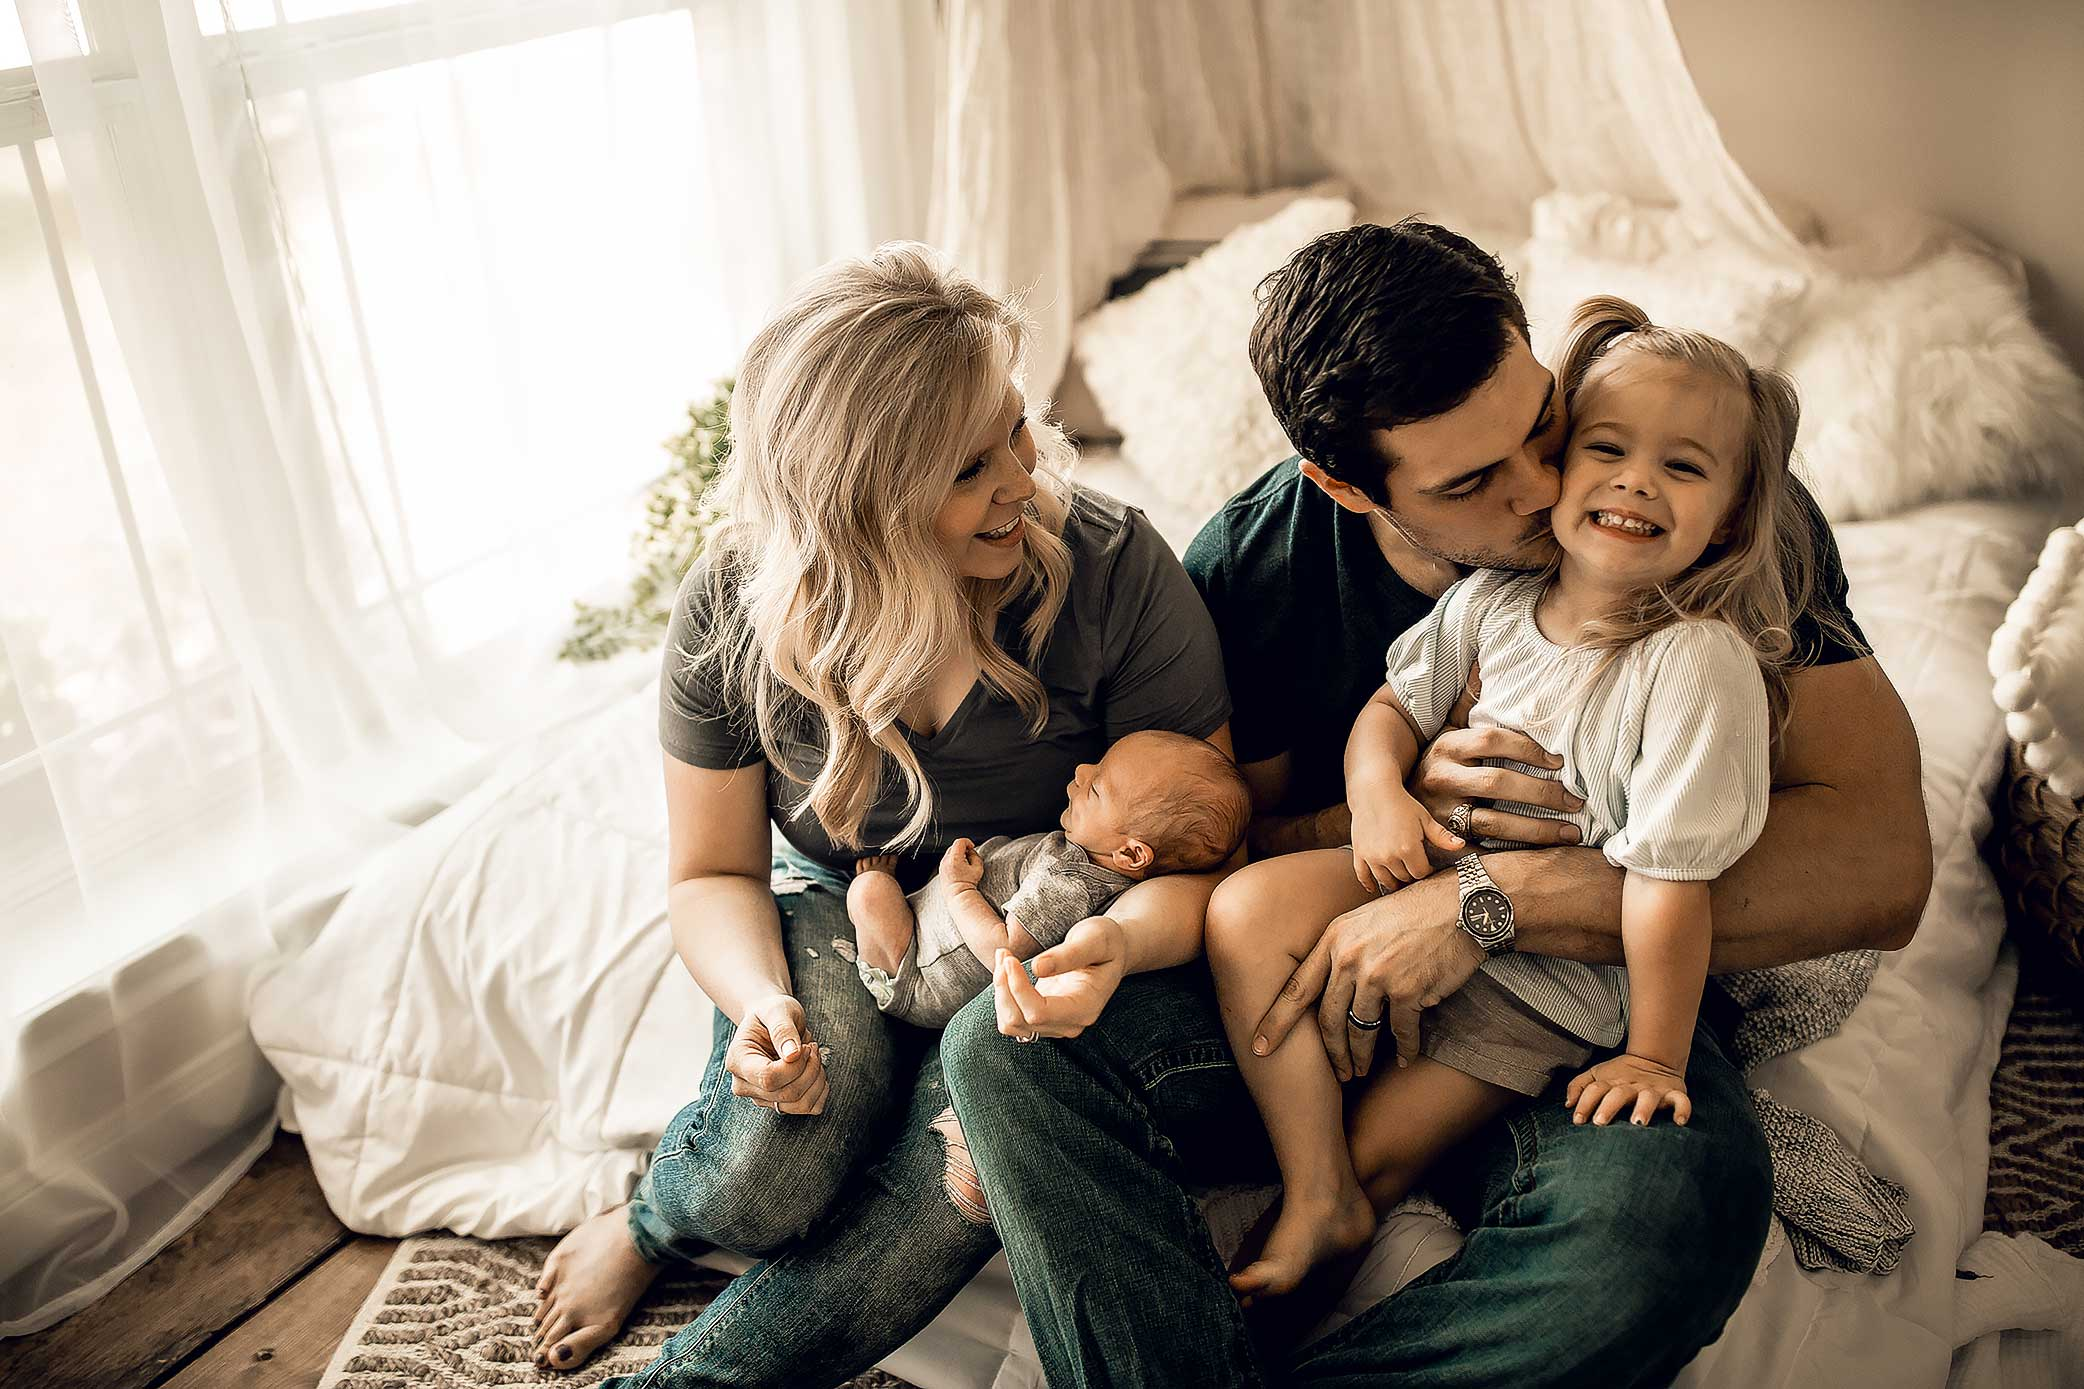 shelby-schiller-photography-lifestyle-newborn-family-laughing.jpg